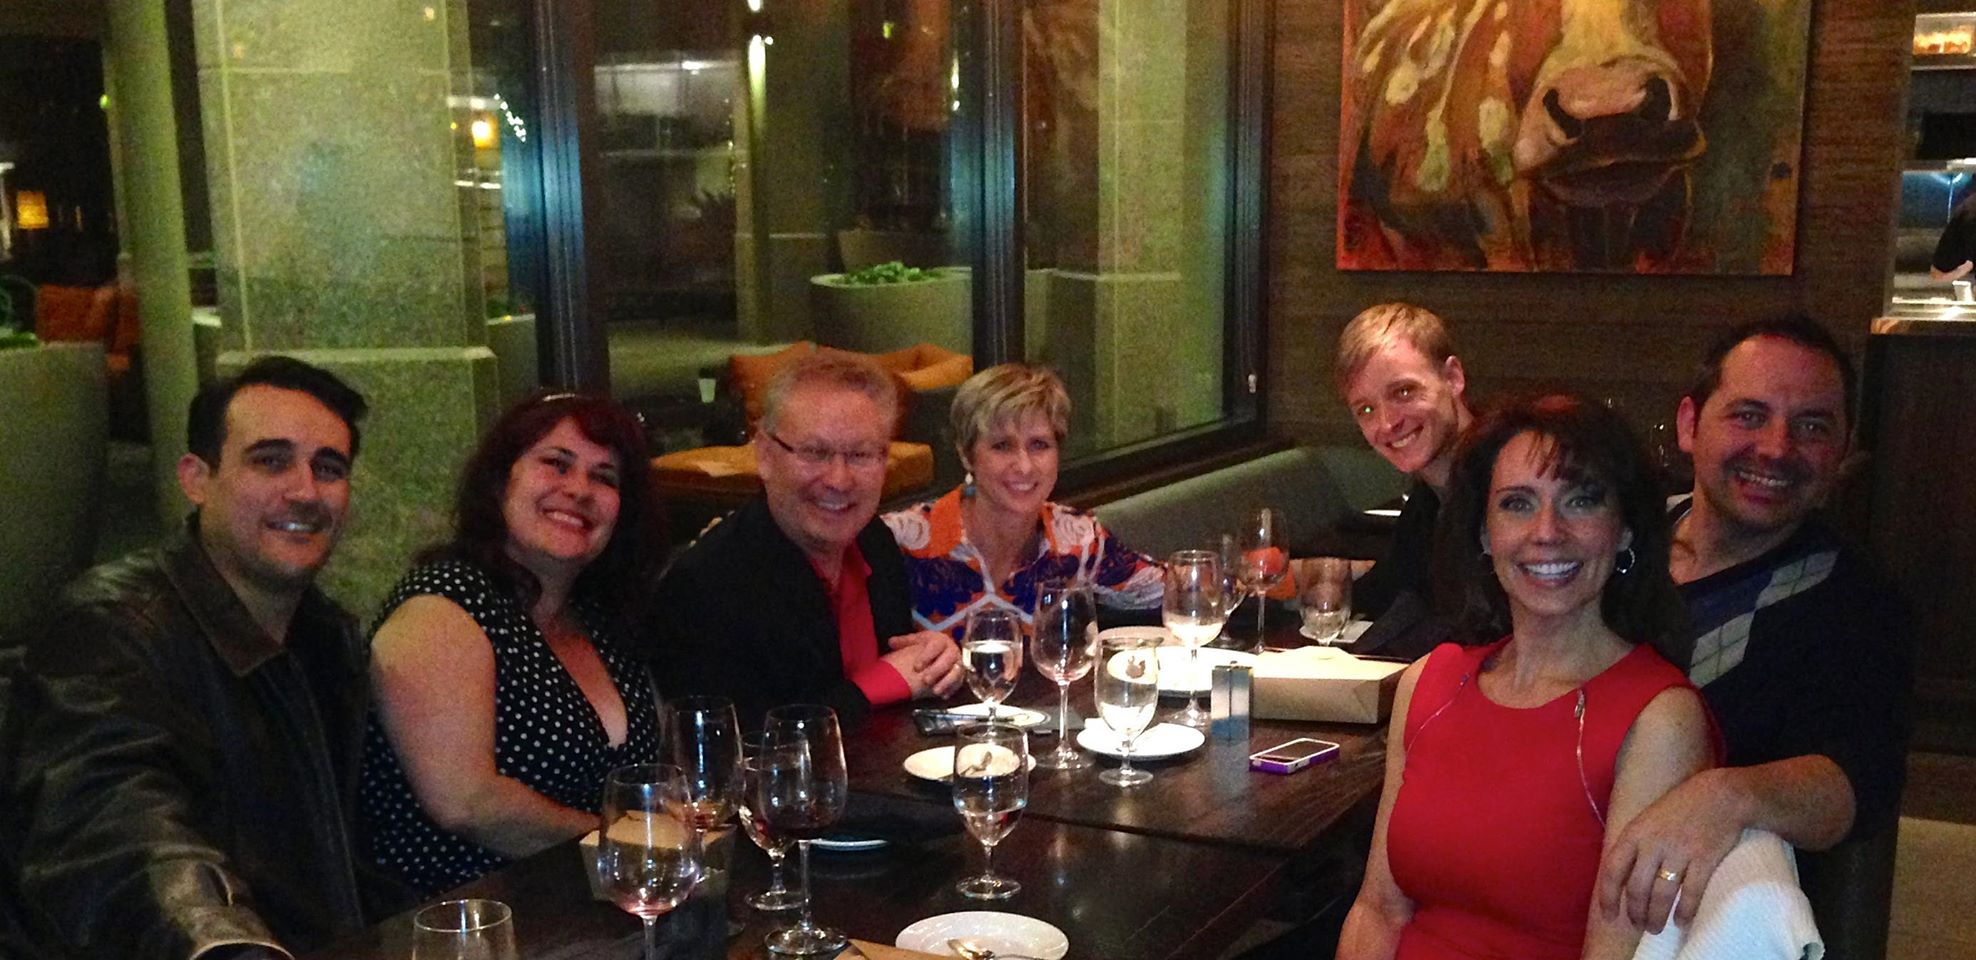 December 2013. Local theater luminaries enjoy each other's company after a show. From left: Joseph Cannon, Johanna Carlisle, Michael Barnard, Molly Lajoie Plutnicki, Sam Hay, Vincent Van Fleet and Debby Rosenthal. And, oh yes, a nosy bovine.